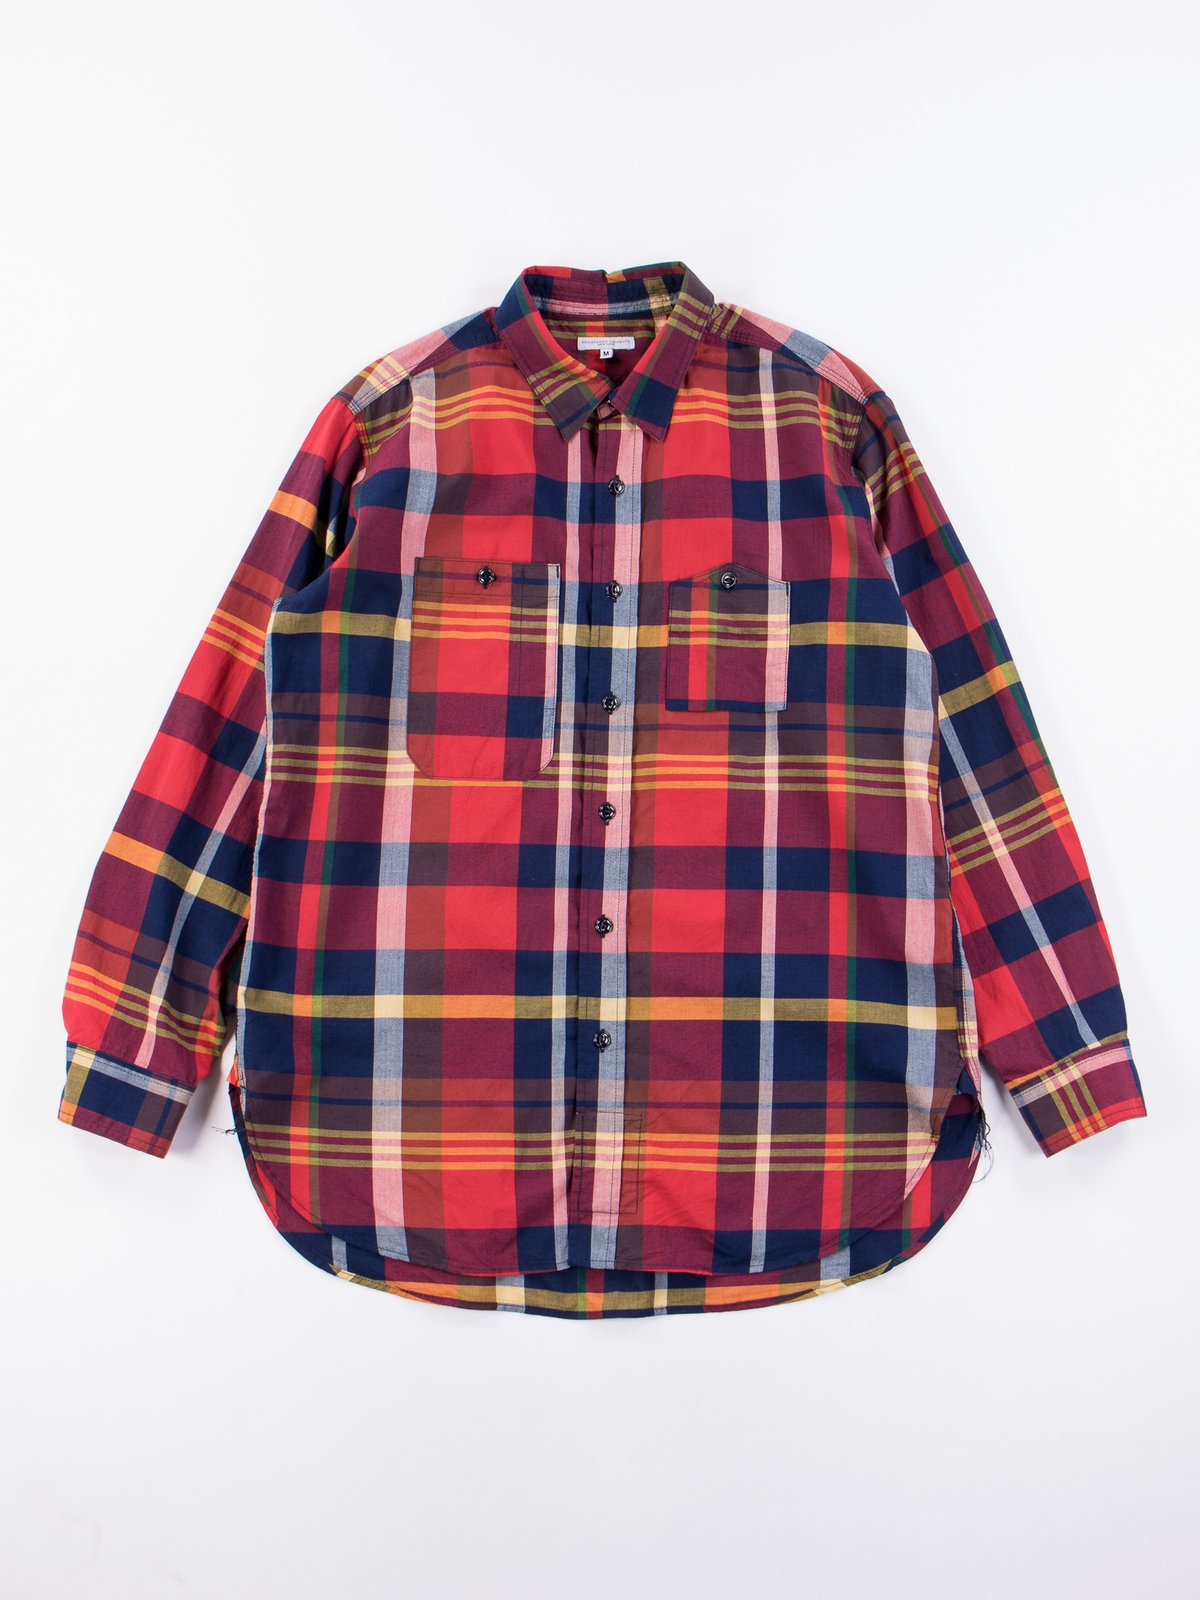 Red/Navy Cotton Big Madras Plaid Work Shirt - Image 1